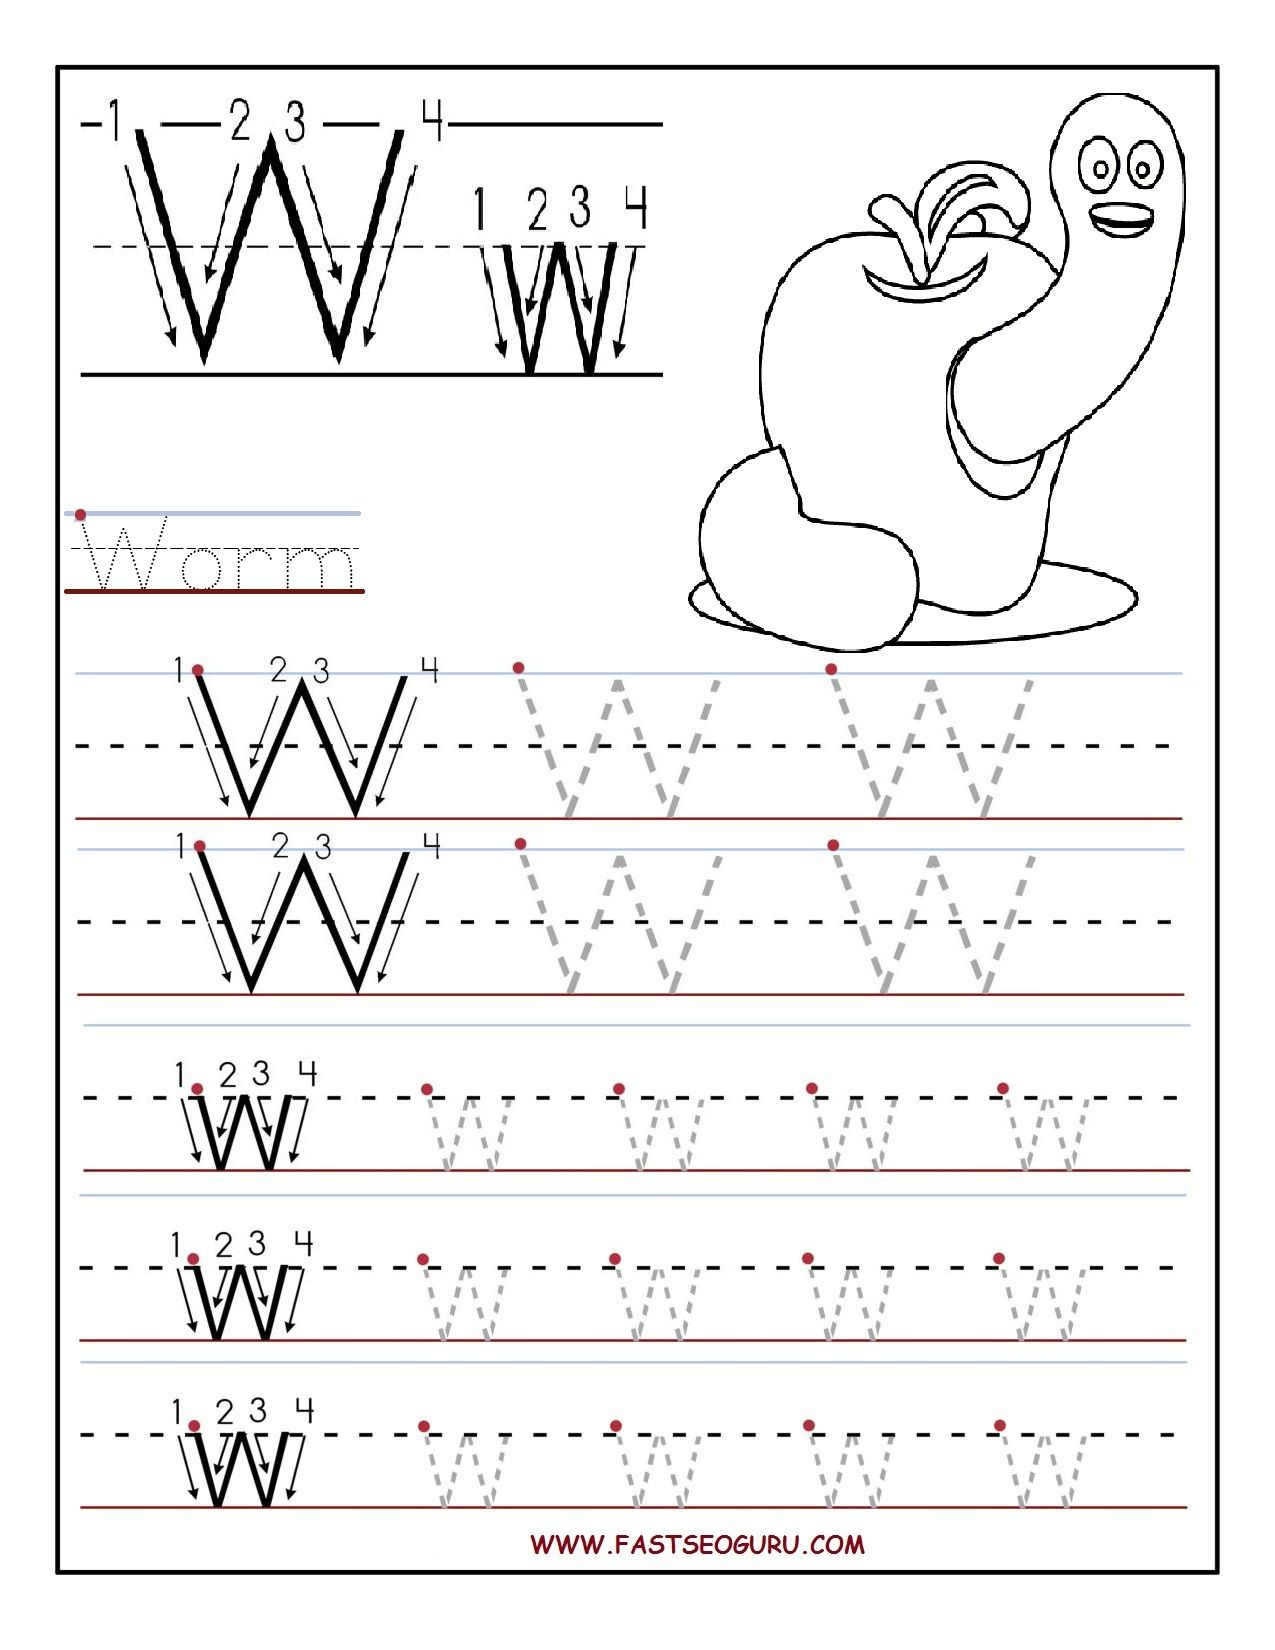 Book Worksheet For Preschool